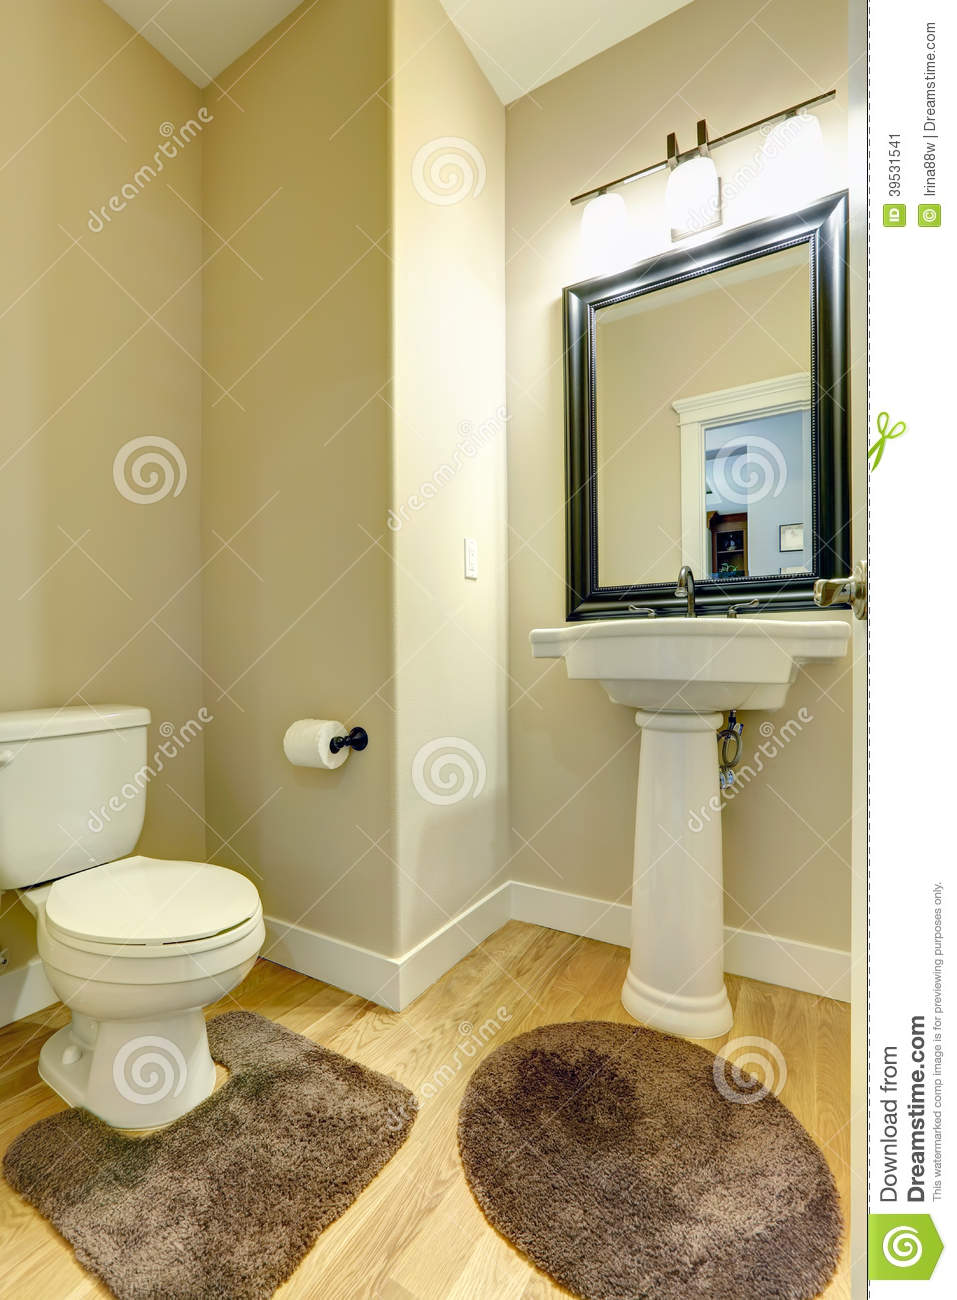 Bathroom Dimensions as well Stone Front House Designs likewise Small Studio Apartment Floor Plans in addition Msg0102134322597 likewise Walk In Shower Designs With Bench Seat. on small bathroom floor plans with corner shower